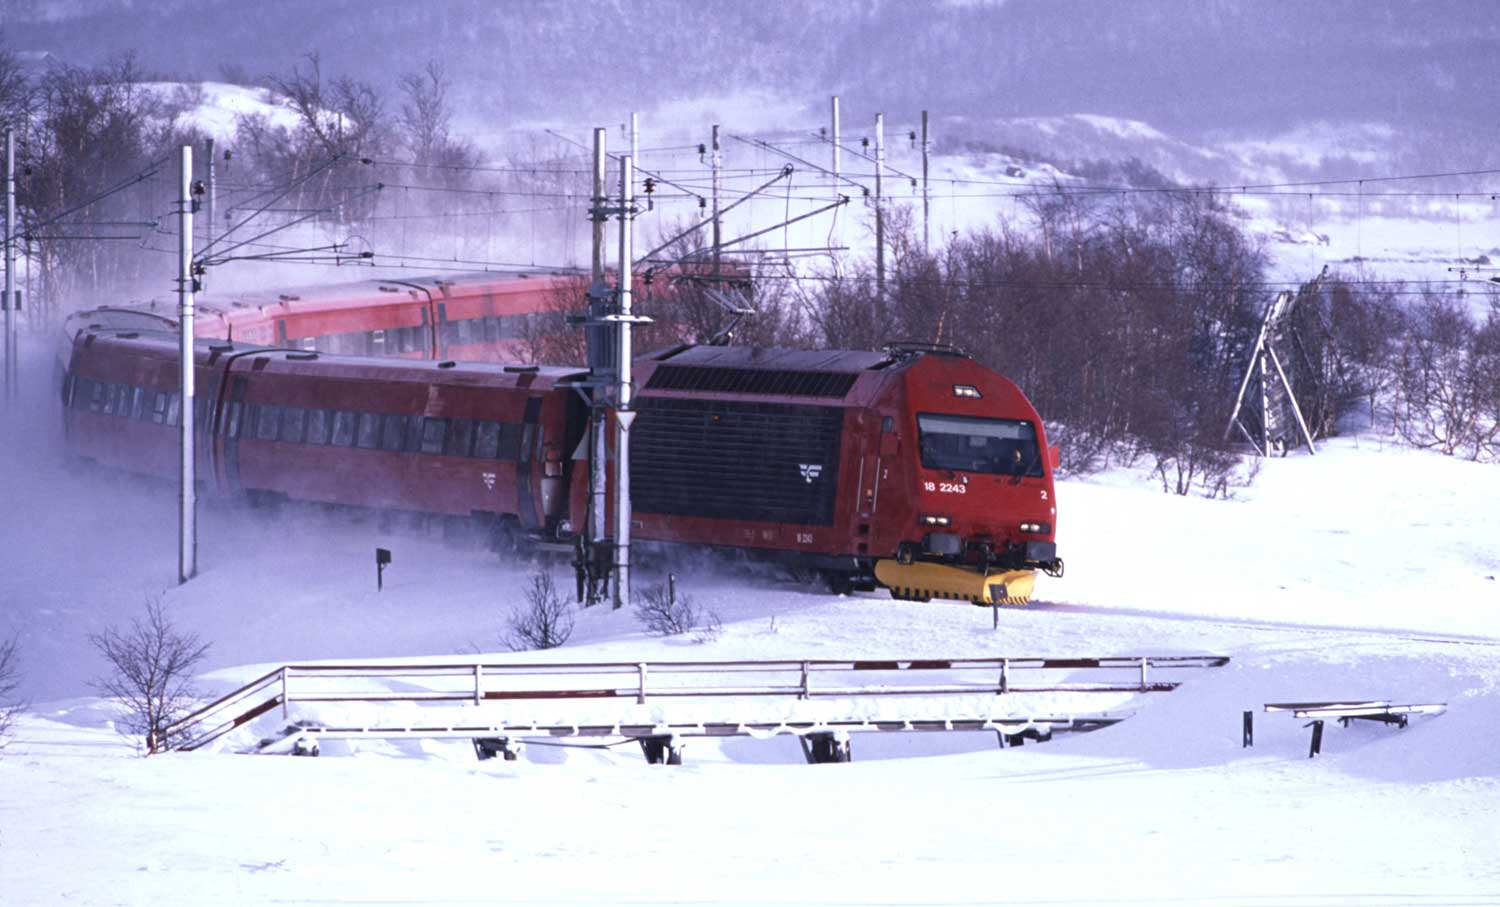 Oslo to Bergen train winter - Bergen Railway